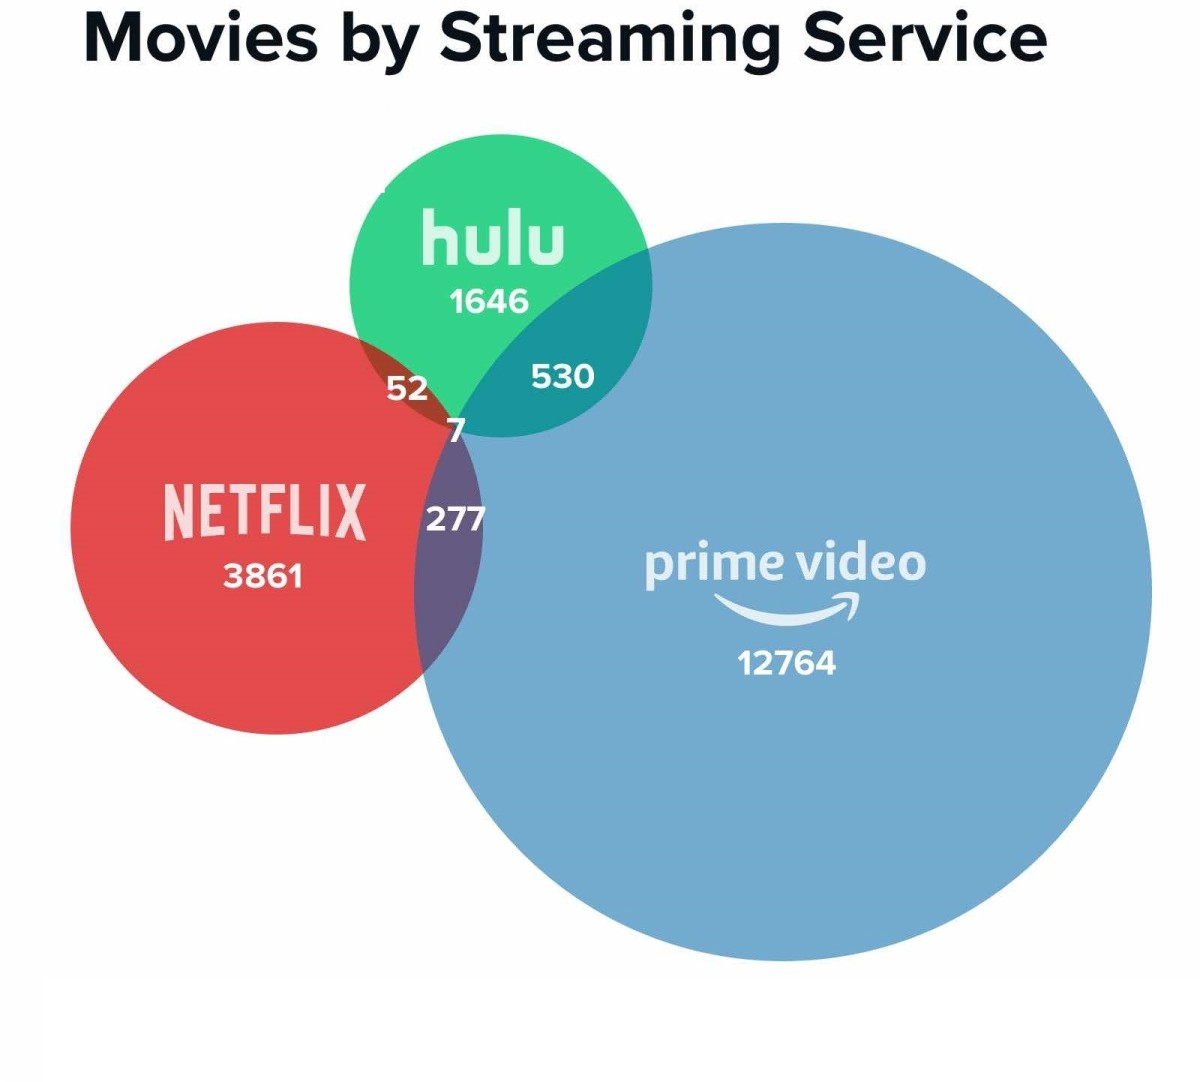 intelligent-use-of-big-data-by-amazon-and-netflix-to-harness-greater-profit